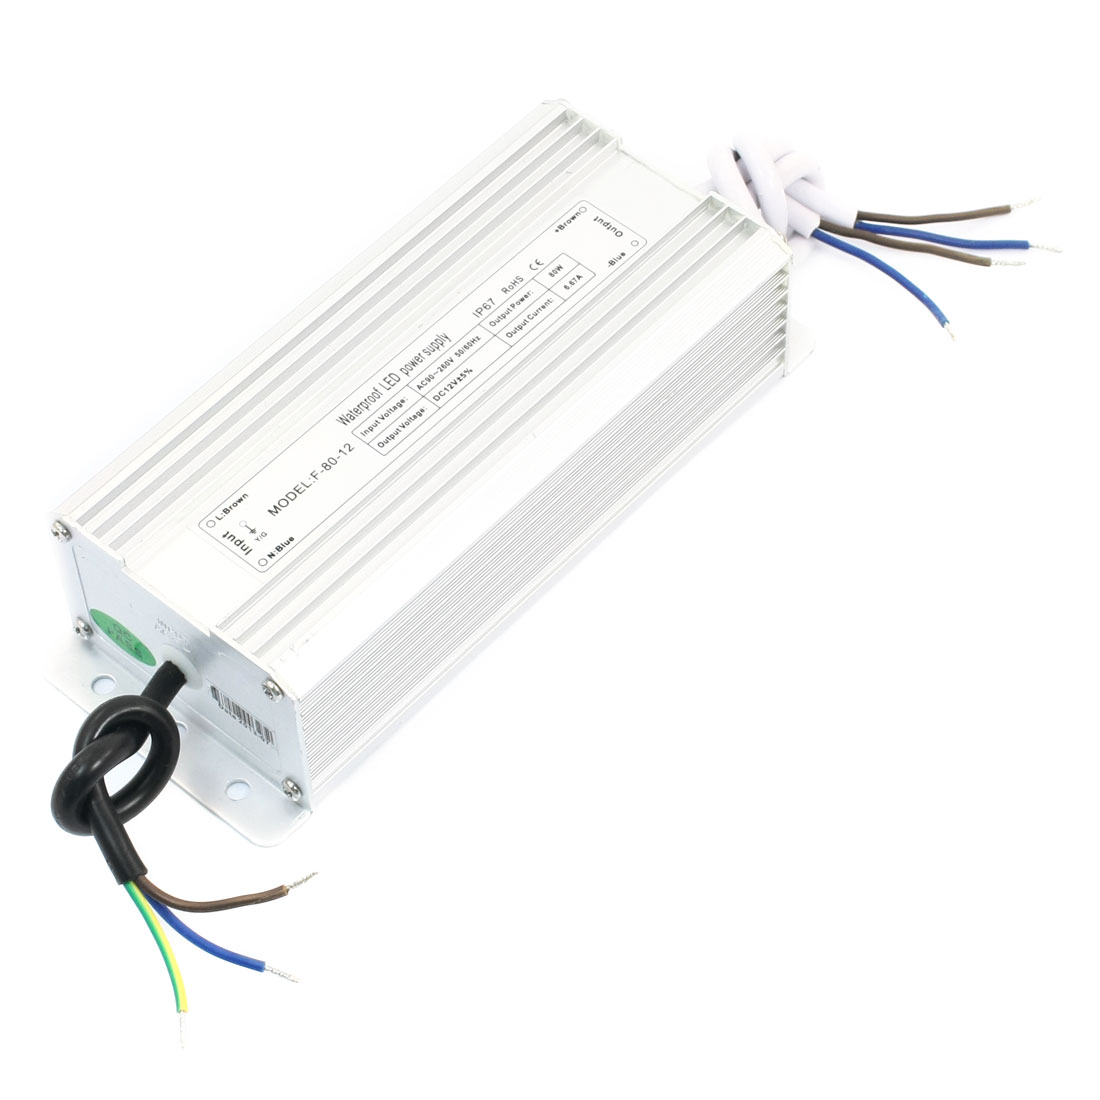 AC 90-260V Waterproof Power Supply Driver for DC 12V 80W LED Light